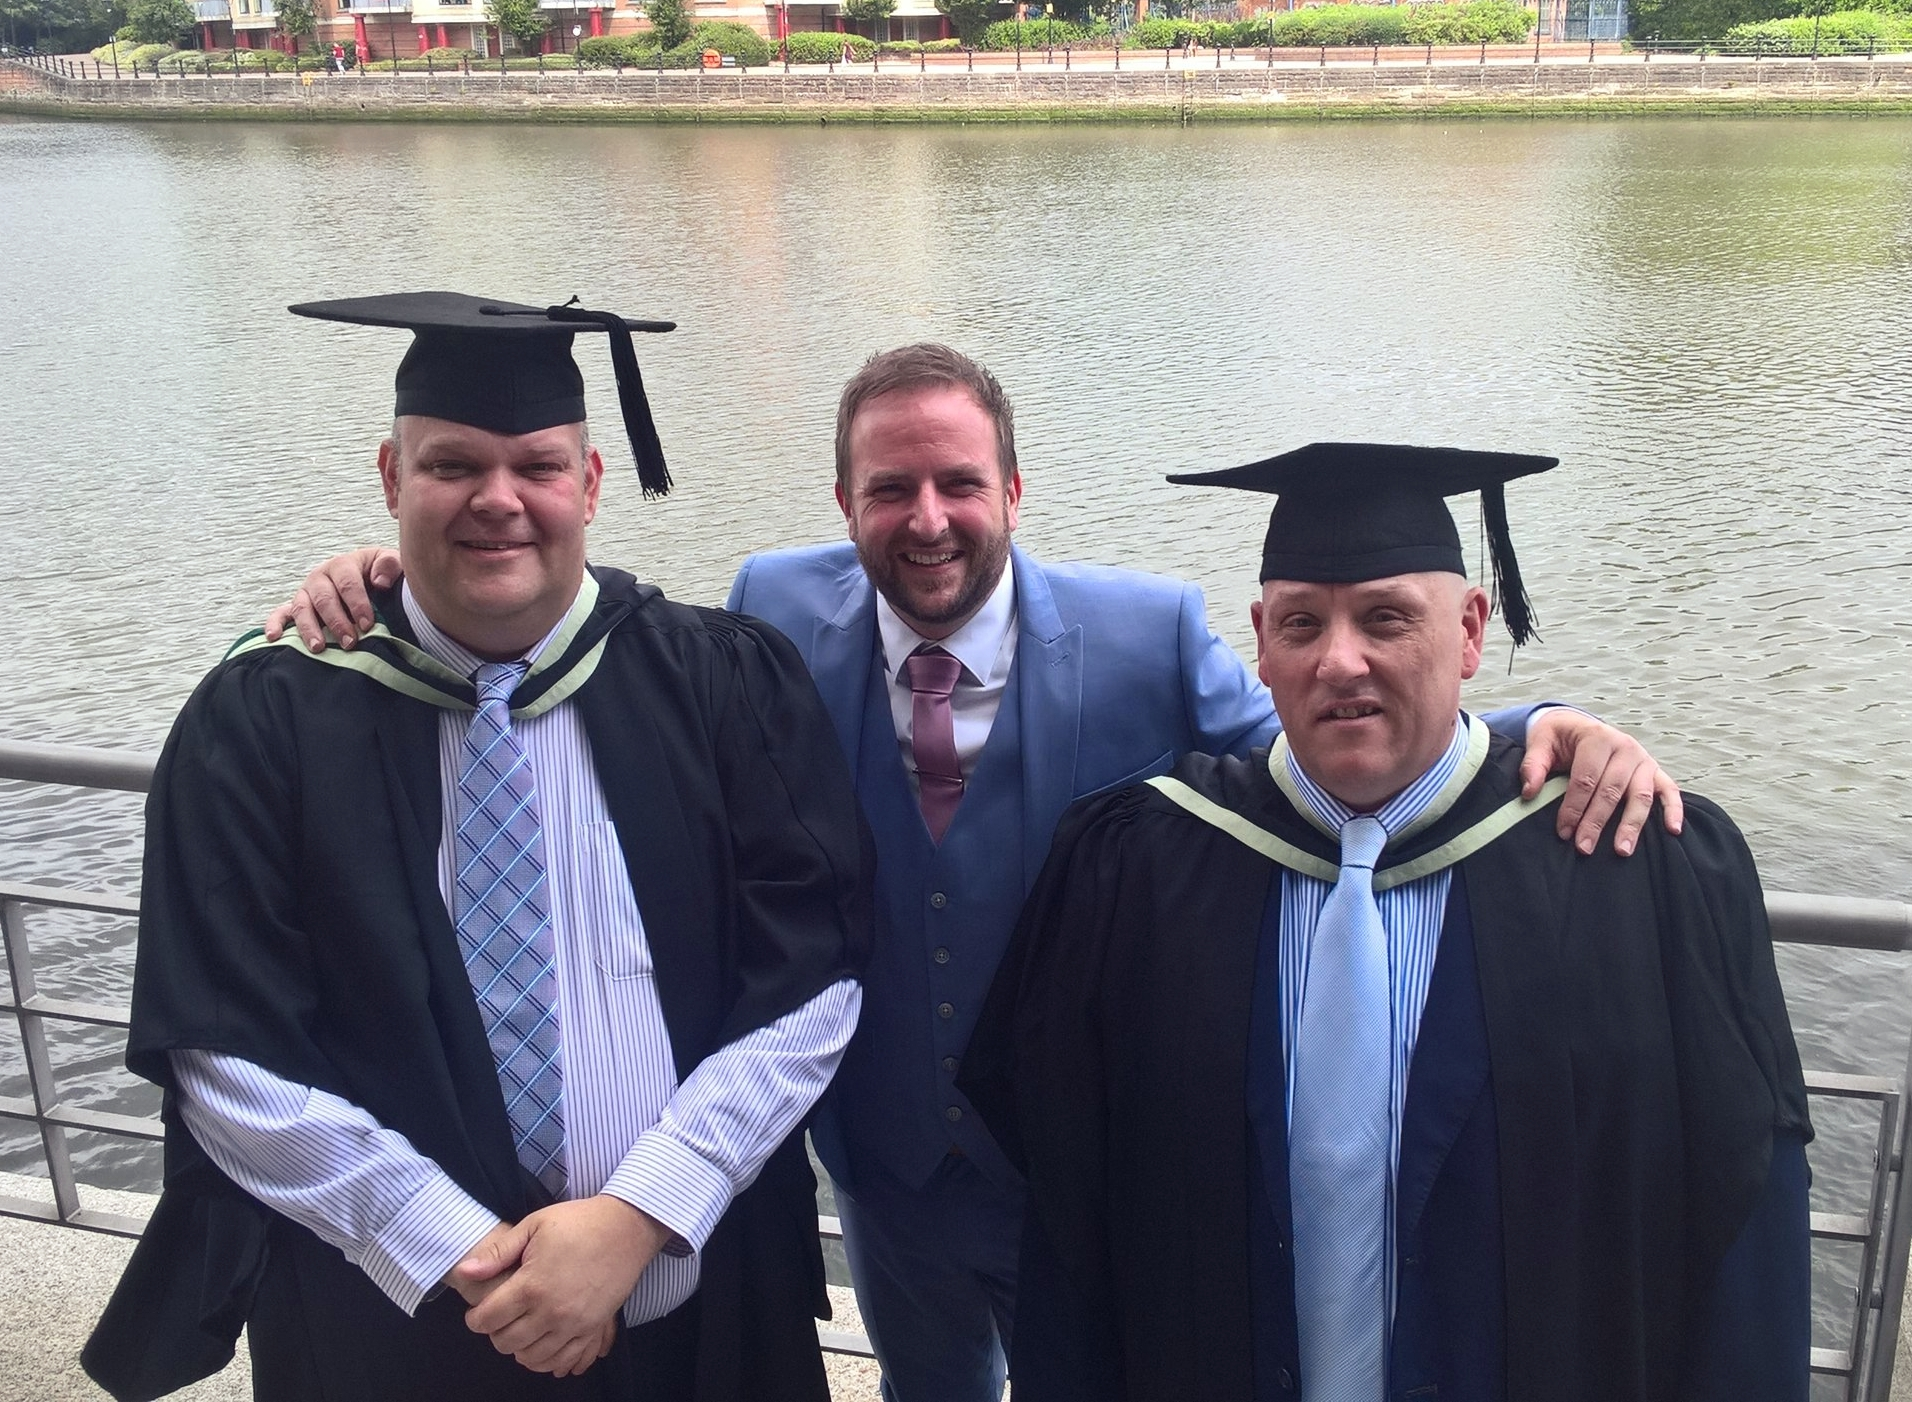 Aaron and David celebrate their graduation with Stephen Marks from Supporting Communities.